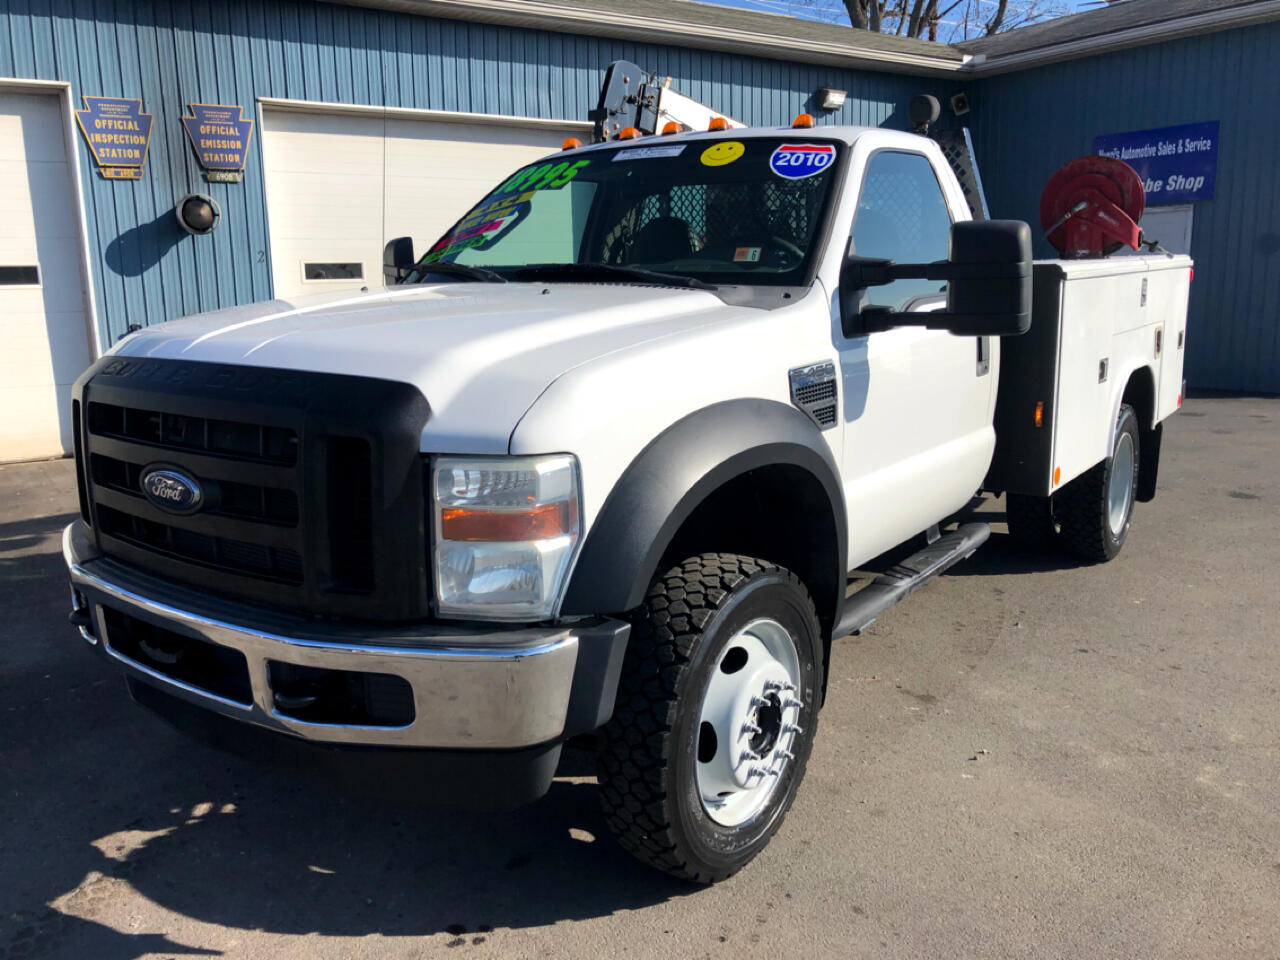 2010 Ford Super Duty F-450 DRW 4WD Mechanic Crane Utility Truck